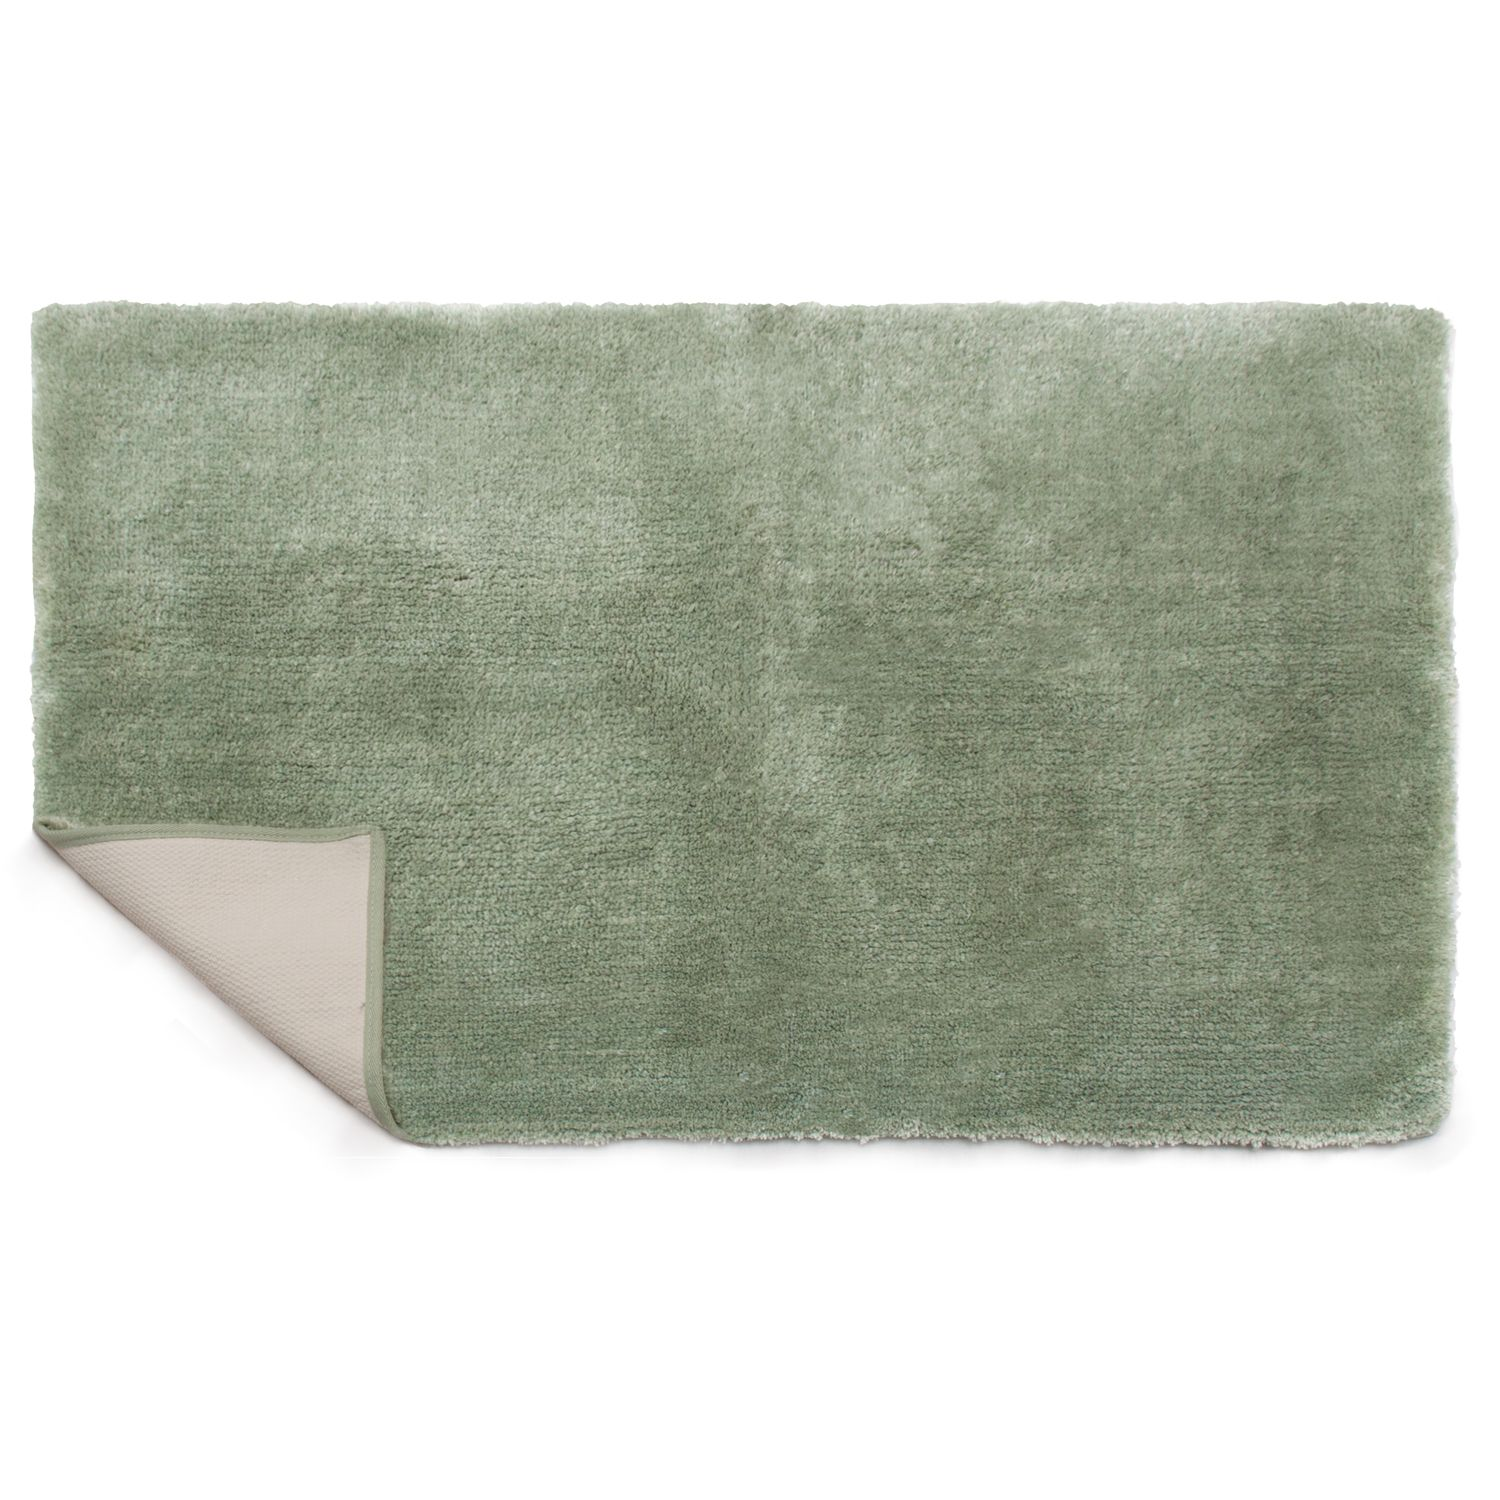 Marvelous Simply Vera Vera Wang The Premium Luxury Solid Bath Rug   17u0027u0027 X 24u0027u0027